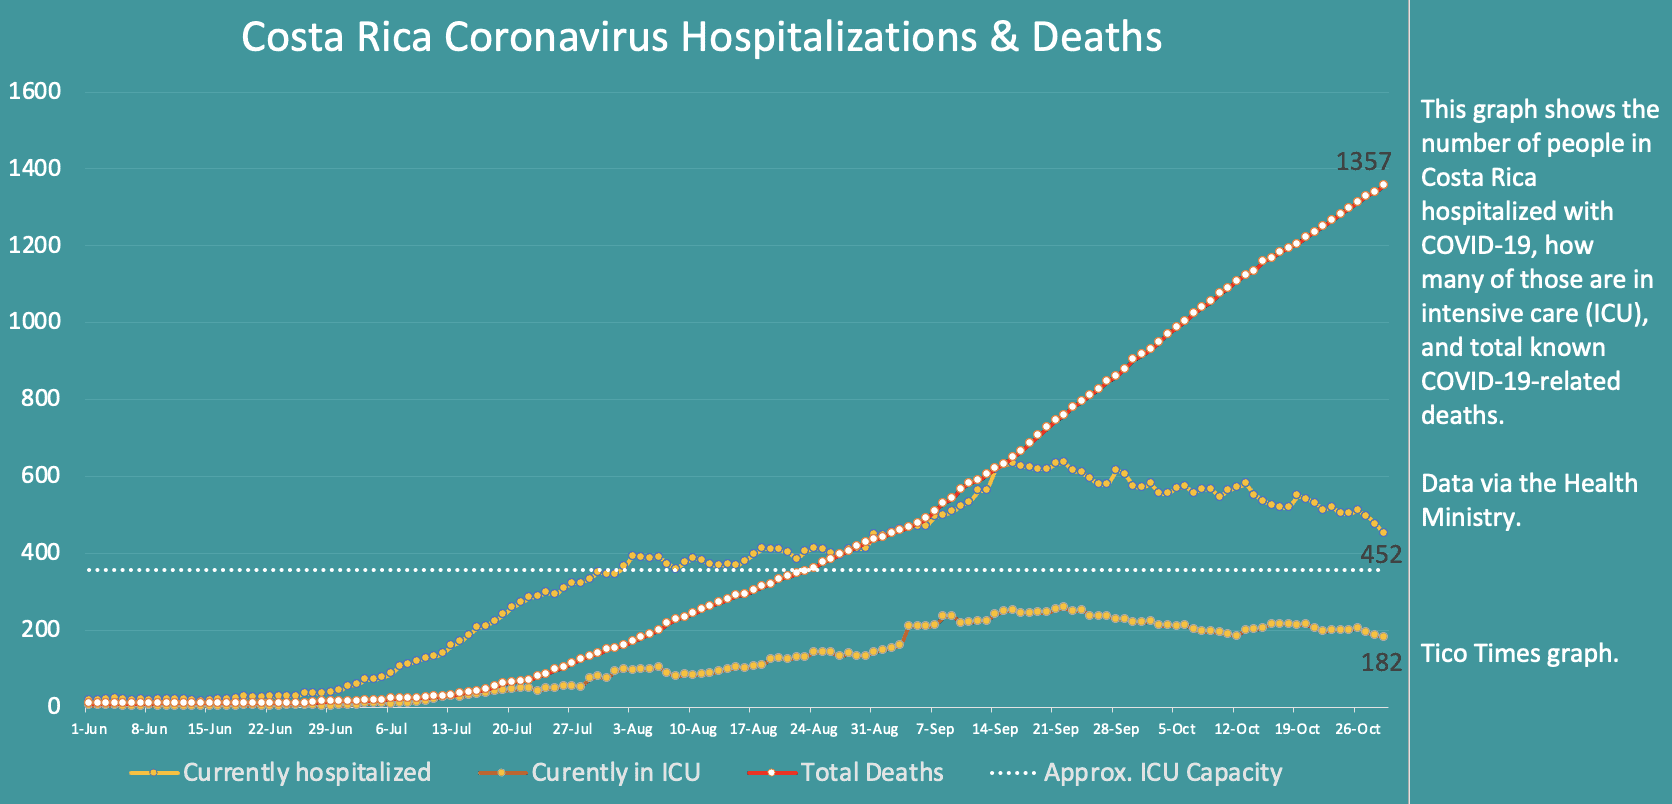 Costa Rica coronavirus hospitalizations and deaths on October 29, 2020